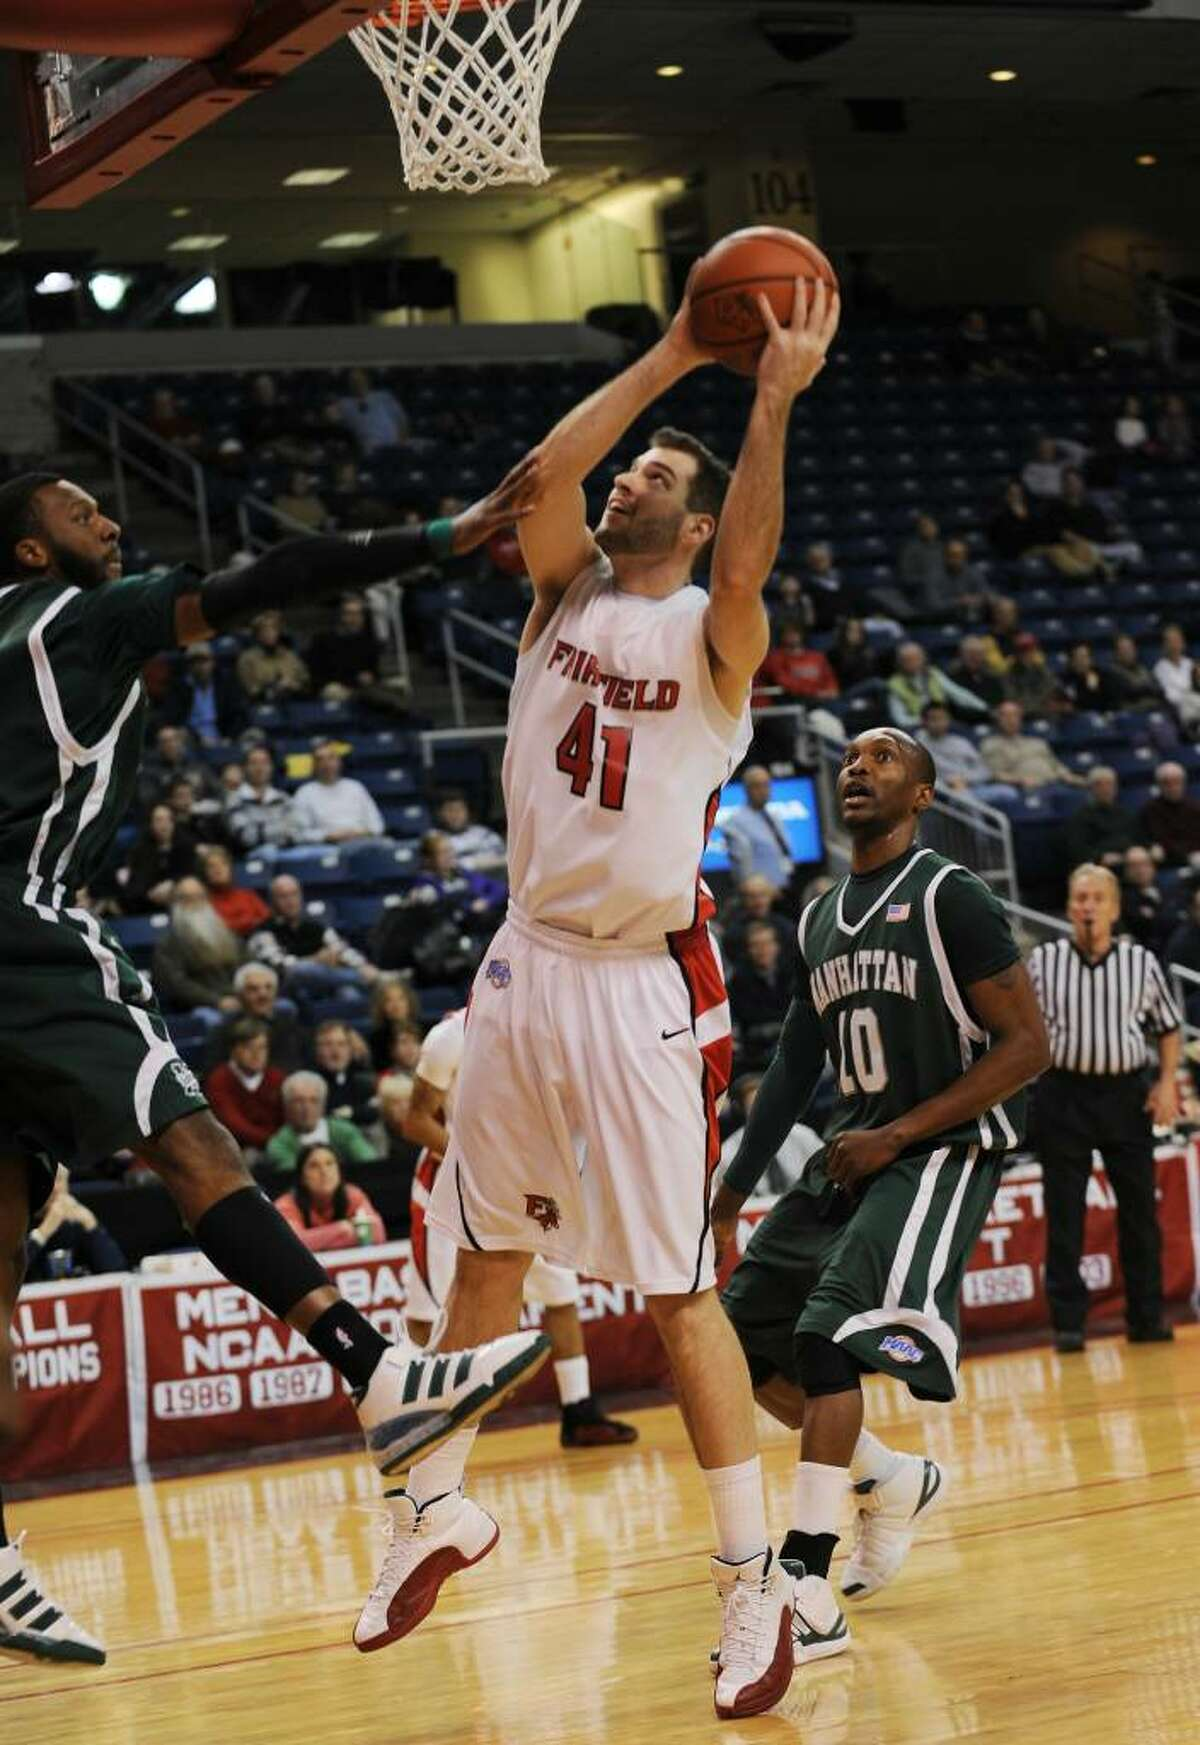 Mike Evanovich- Fairfield U. vs. Manhattan basketball